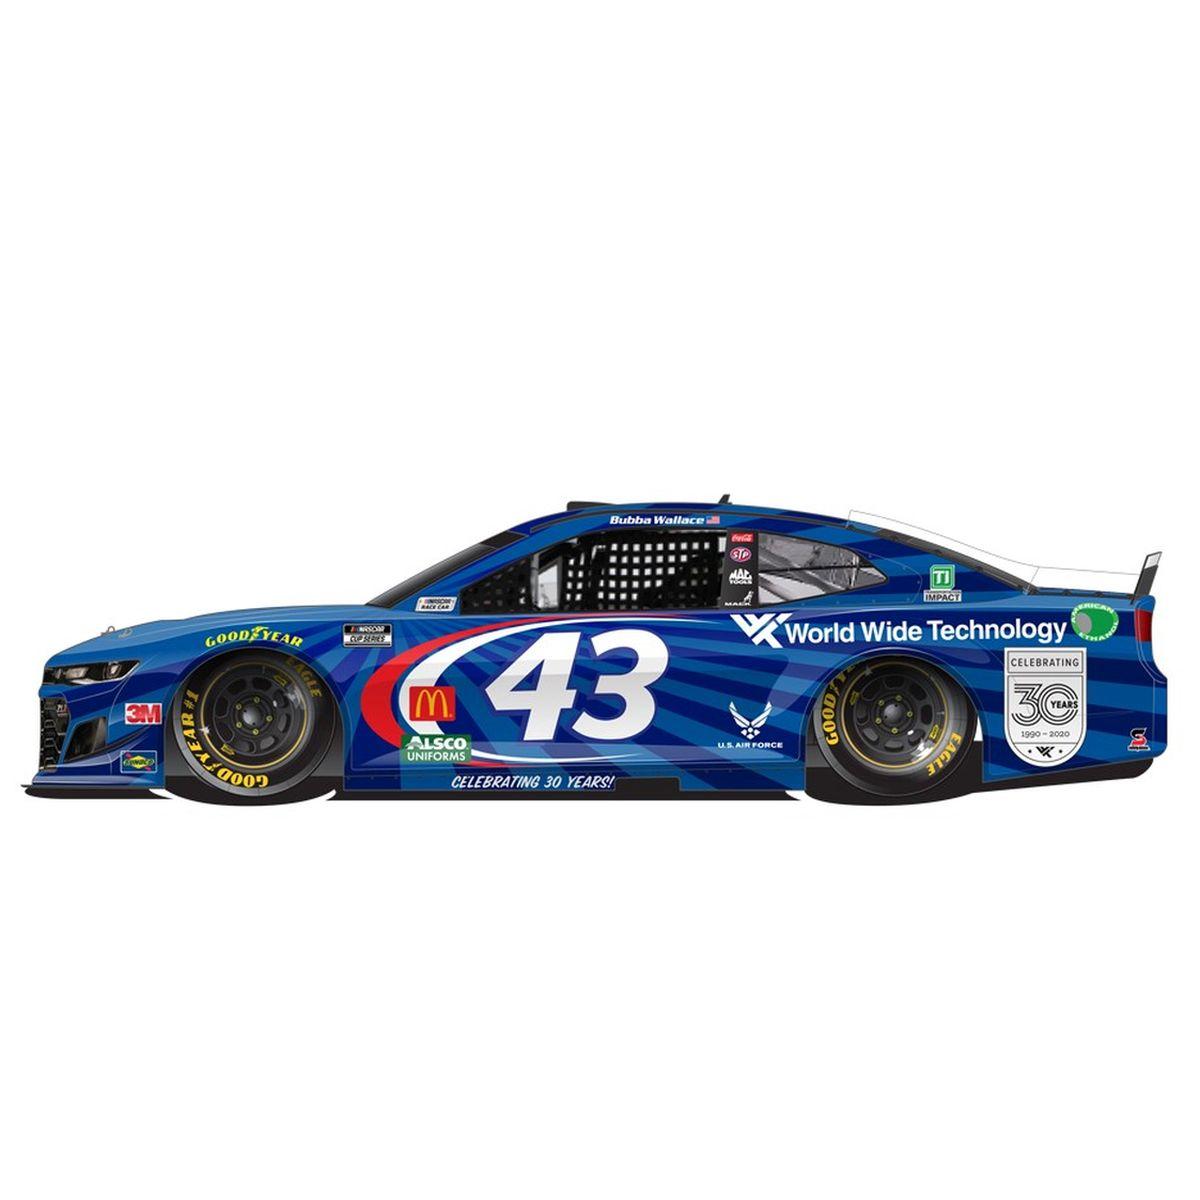 Bubba Wallace No. 43 World Wide Technology 30th Anniversary NASCAR Cup Series 1:24 ELITE Die-Cast